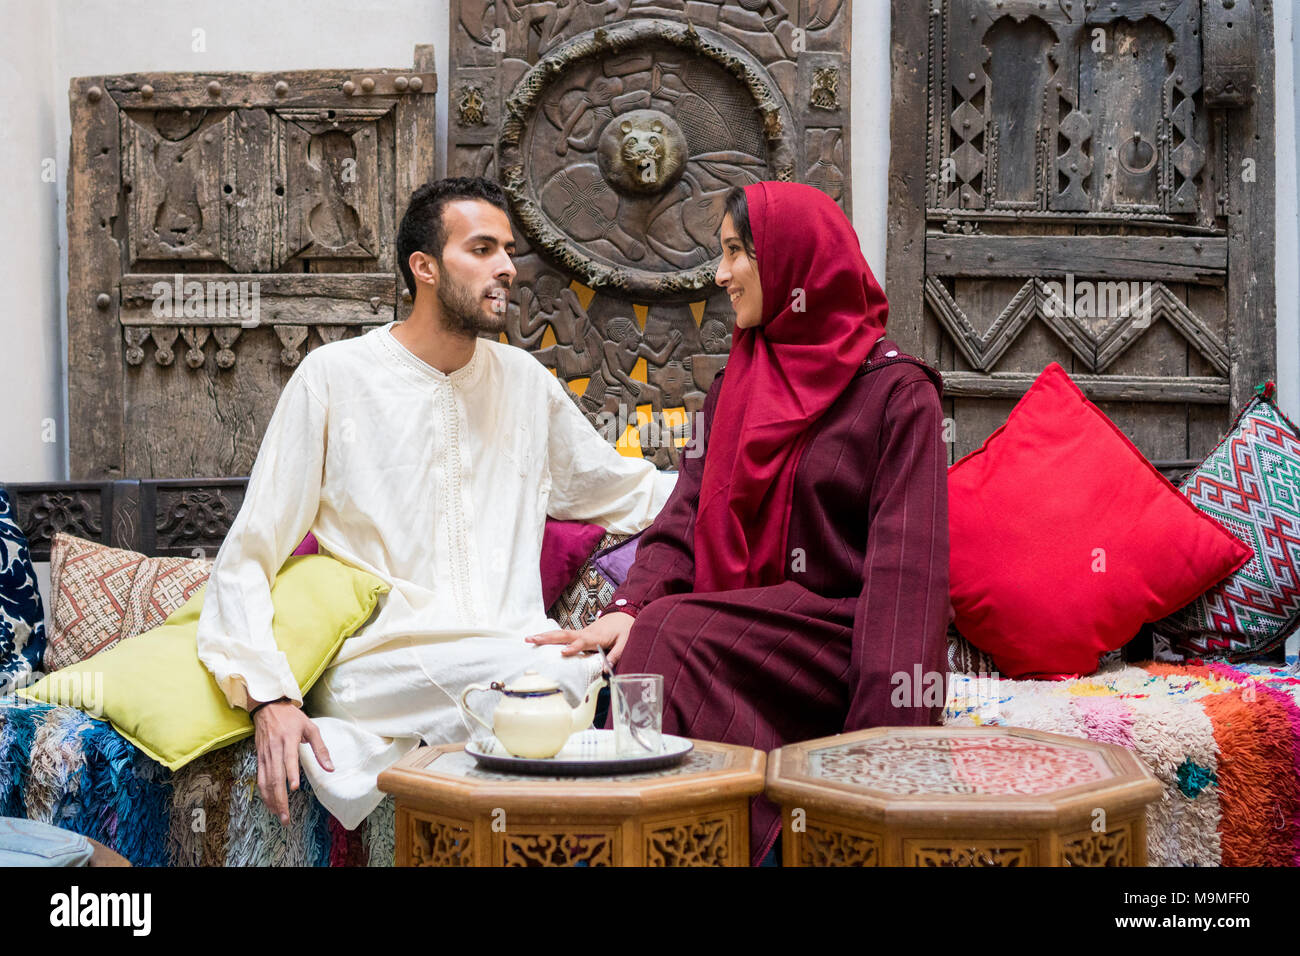 Couple jeune musulman en relation talking and smiling dans maison marocaine traditionnelle Photo Stock